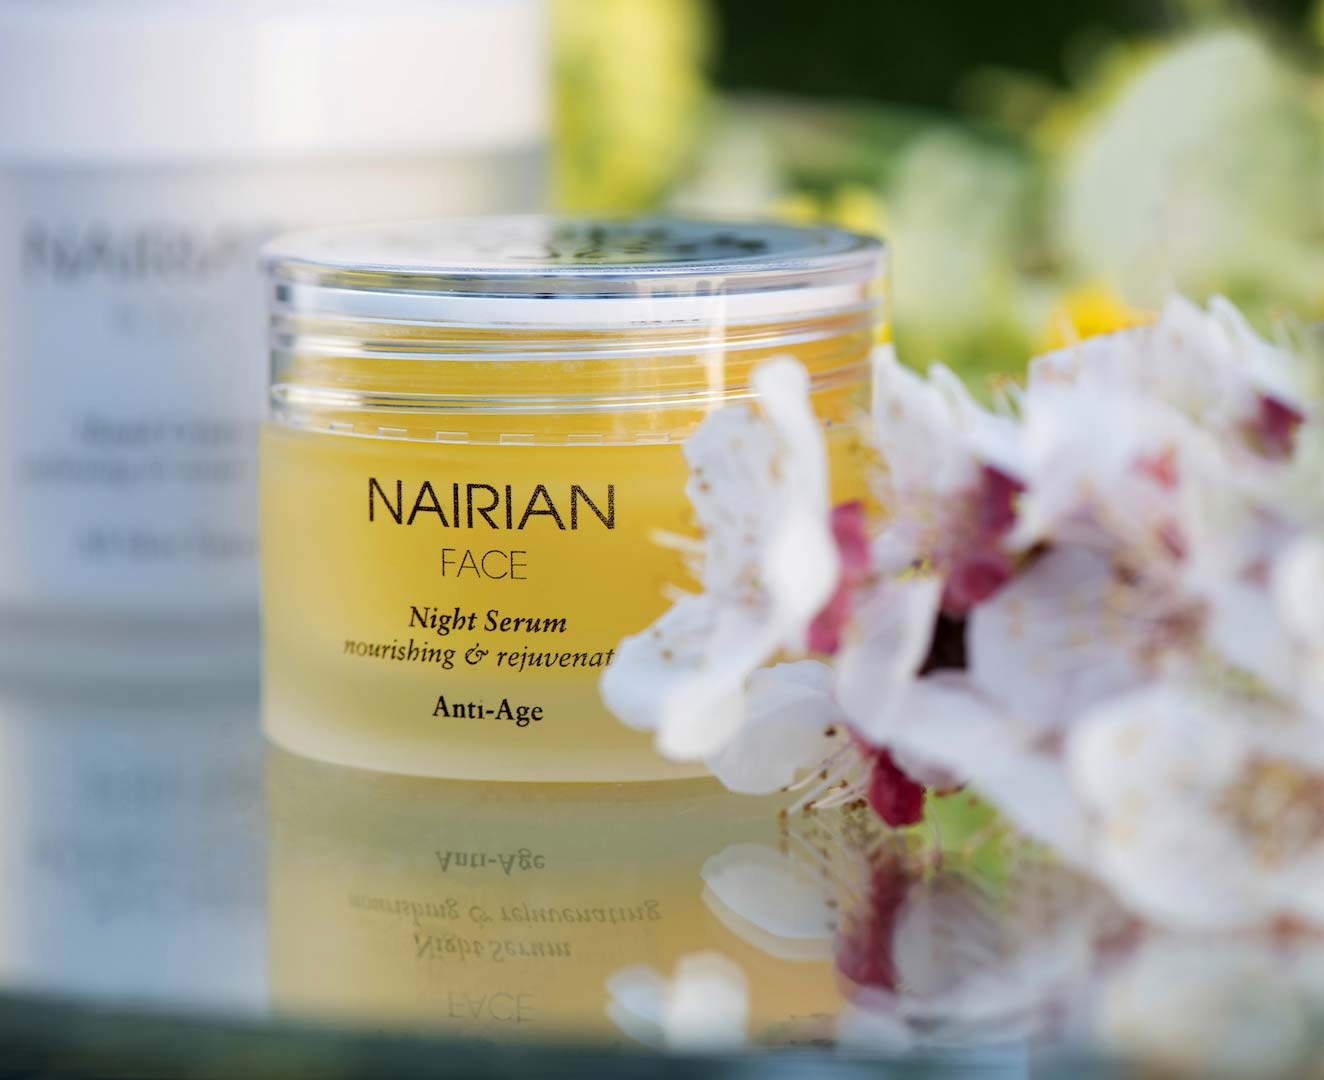 Nairian Night Serum